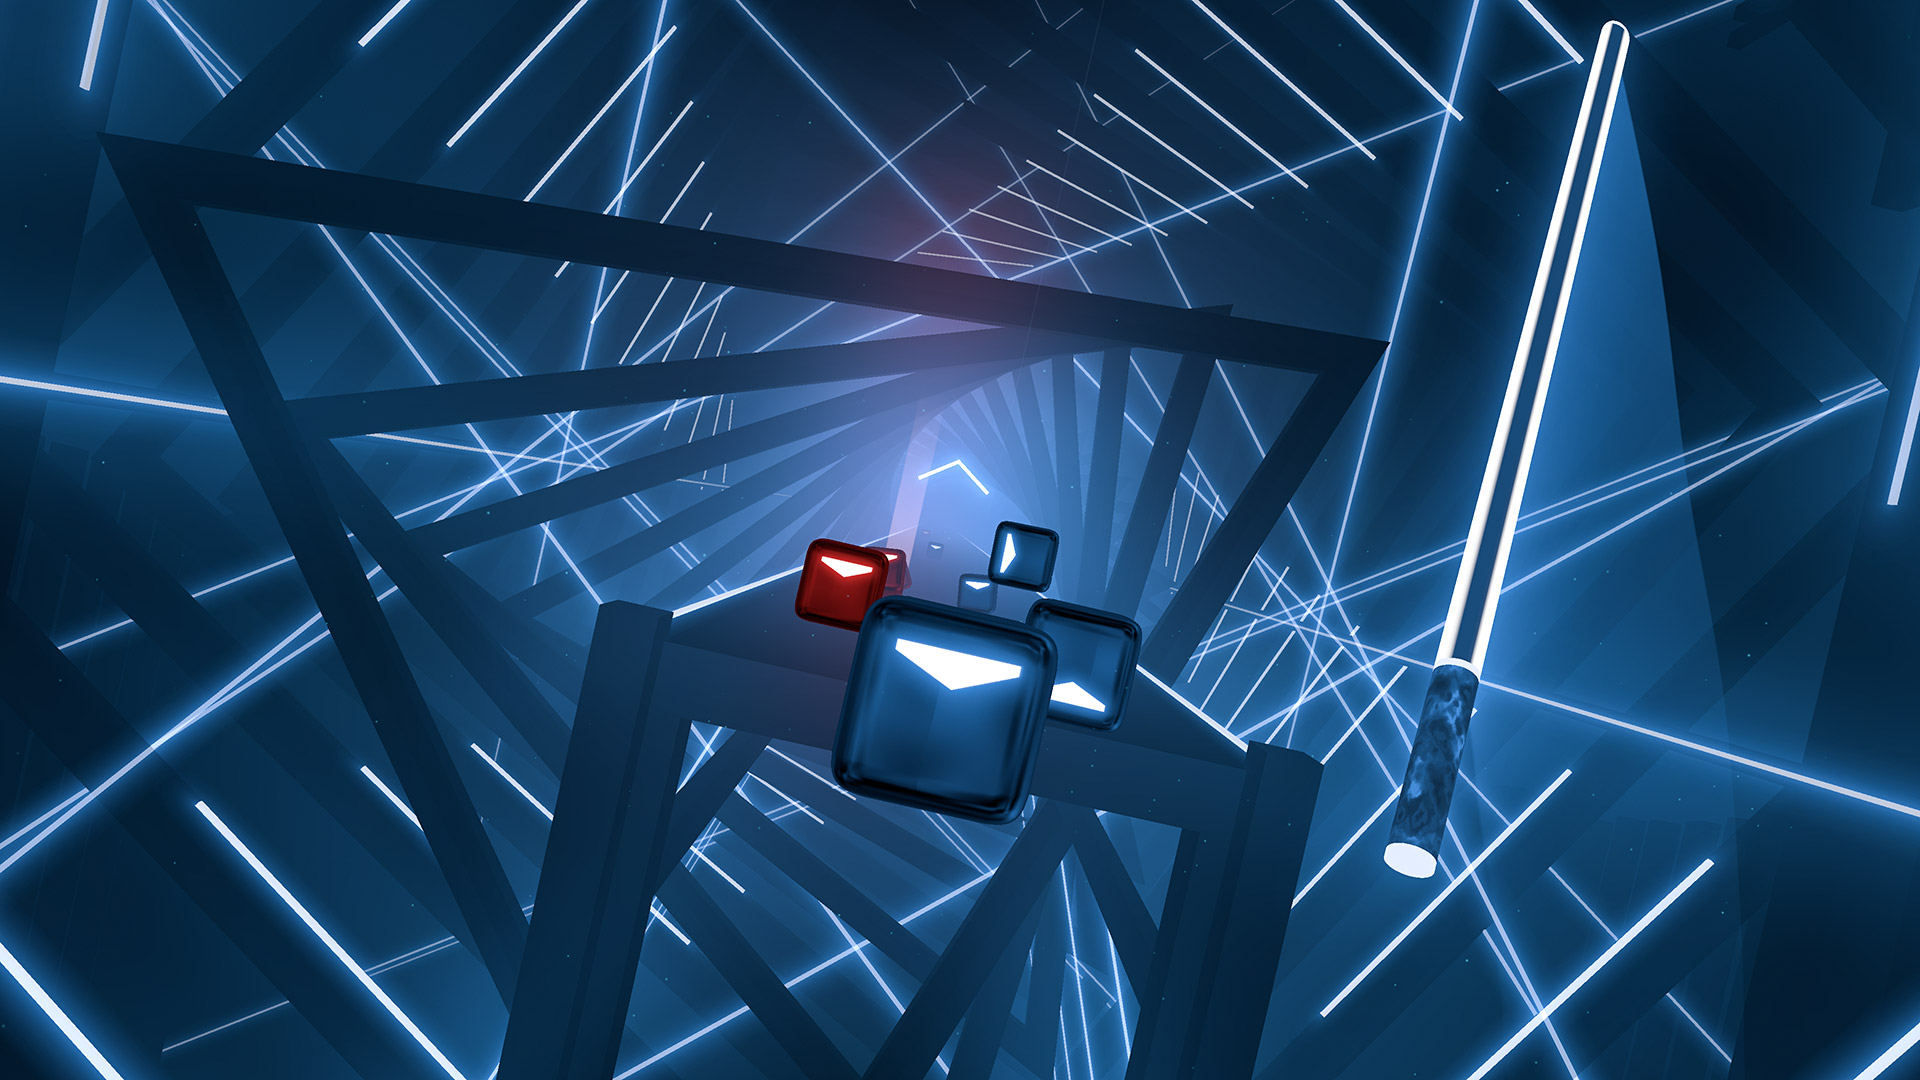 This 'Beat Saber' Project Uses AI to Generate Custom Beat Maps for Any Song